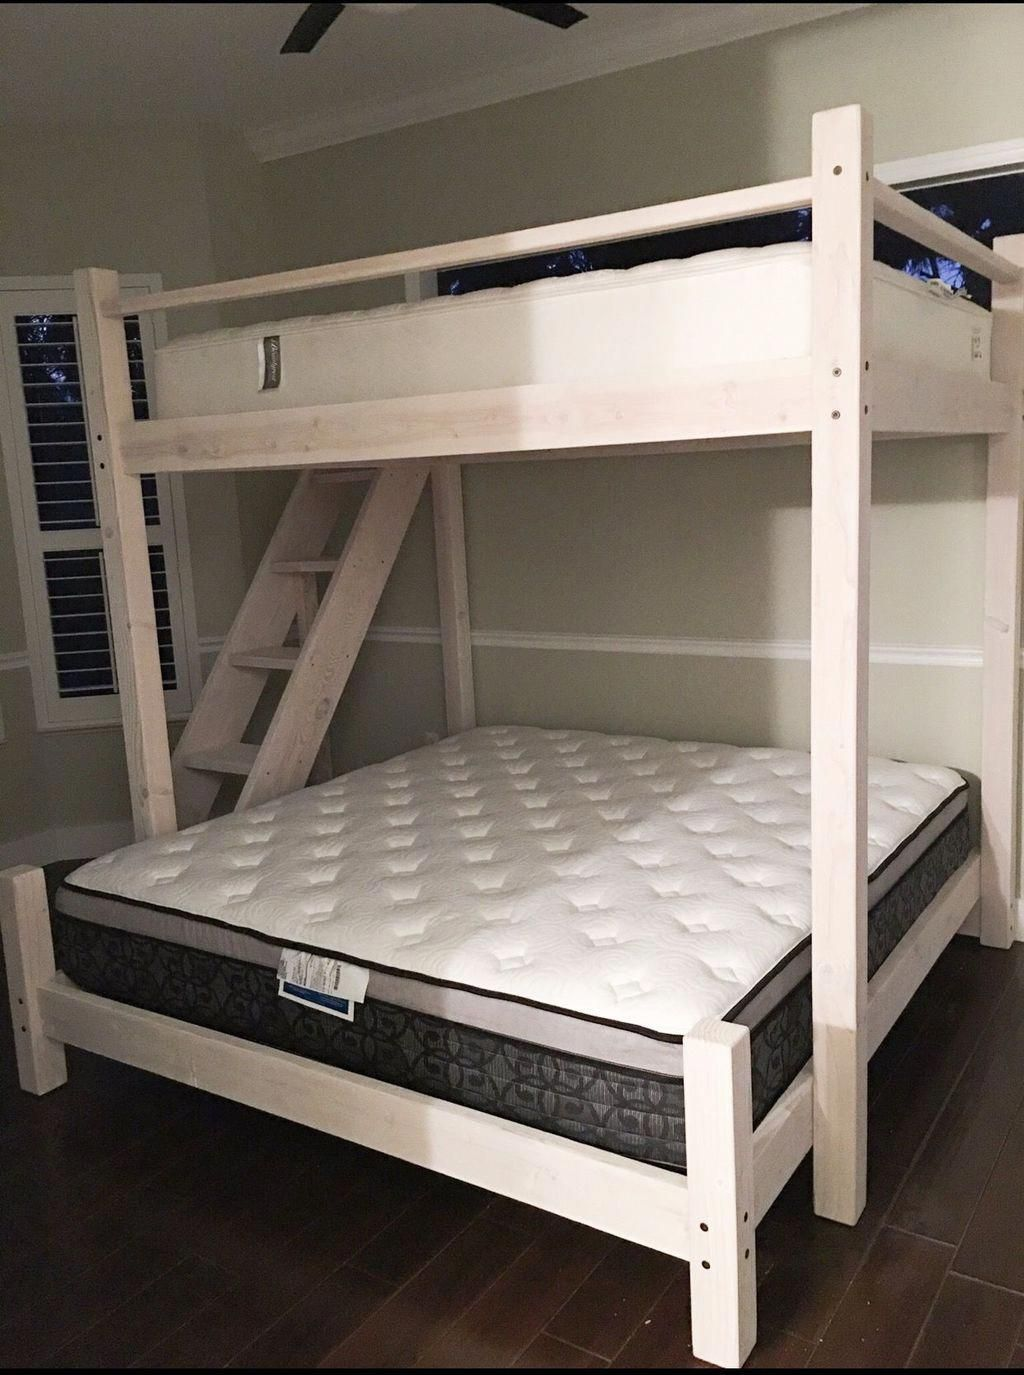 Bunk Bed Queen Over Twin Bunk Beds Sold By Amazon Furnitureanak Furnitureshopp Bunk Bed Queen Over Twin Queen Loft Beds Bunk Bed Designs Cool Bunk Beds